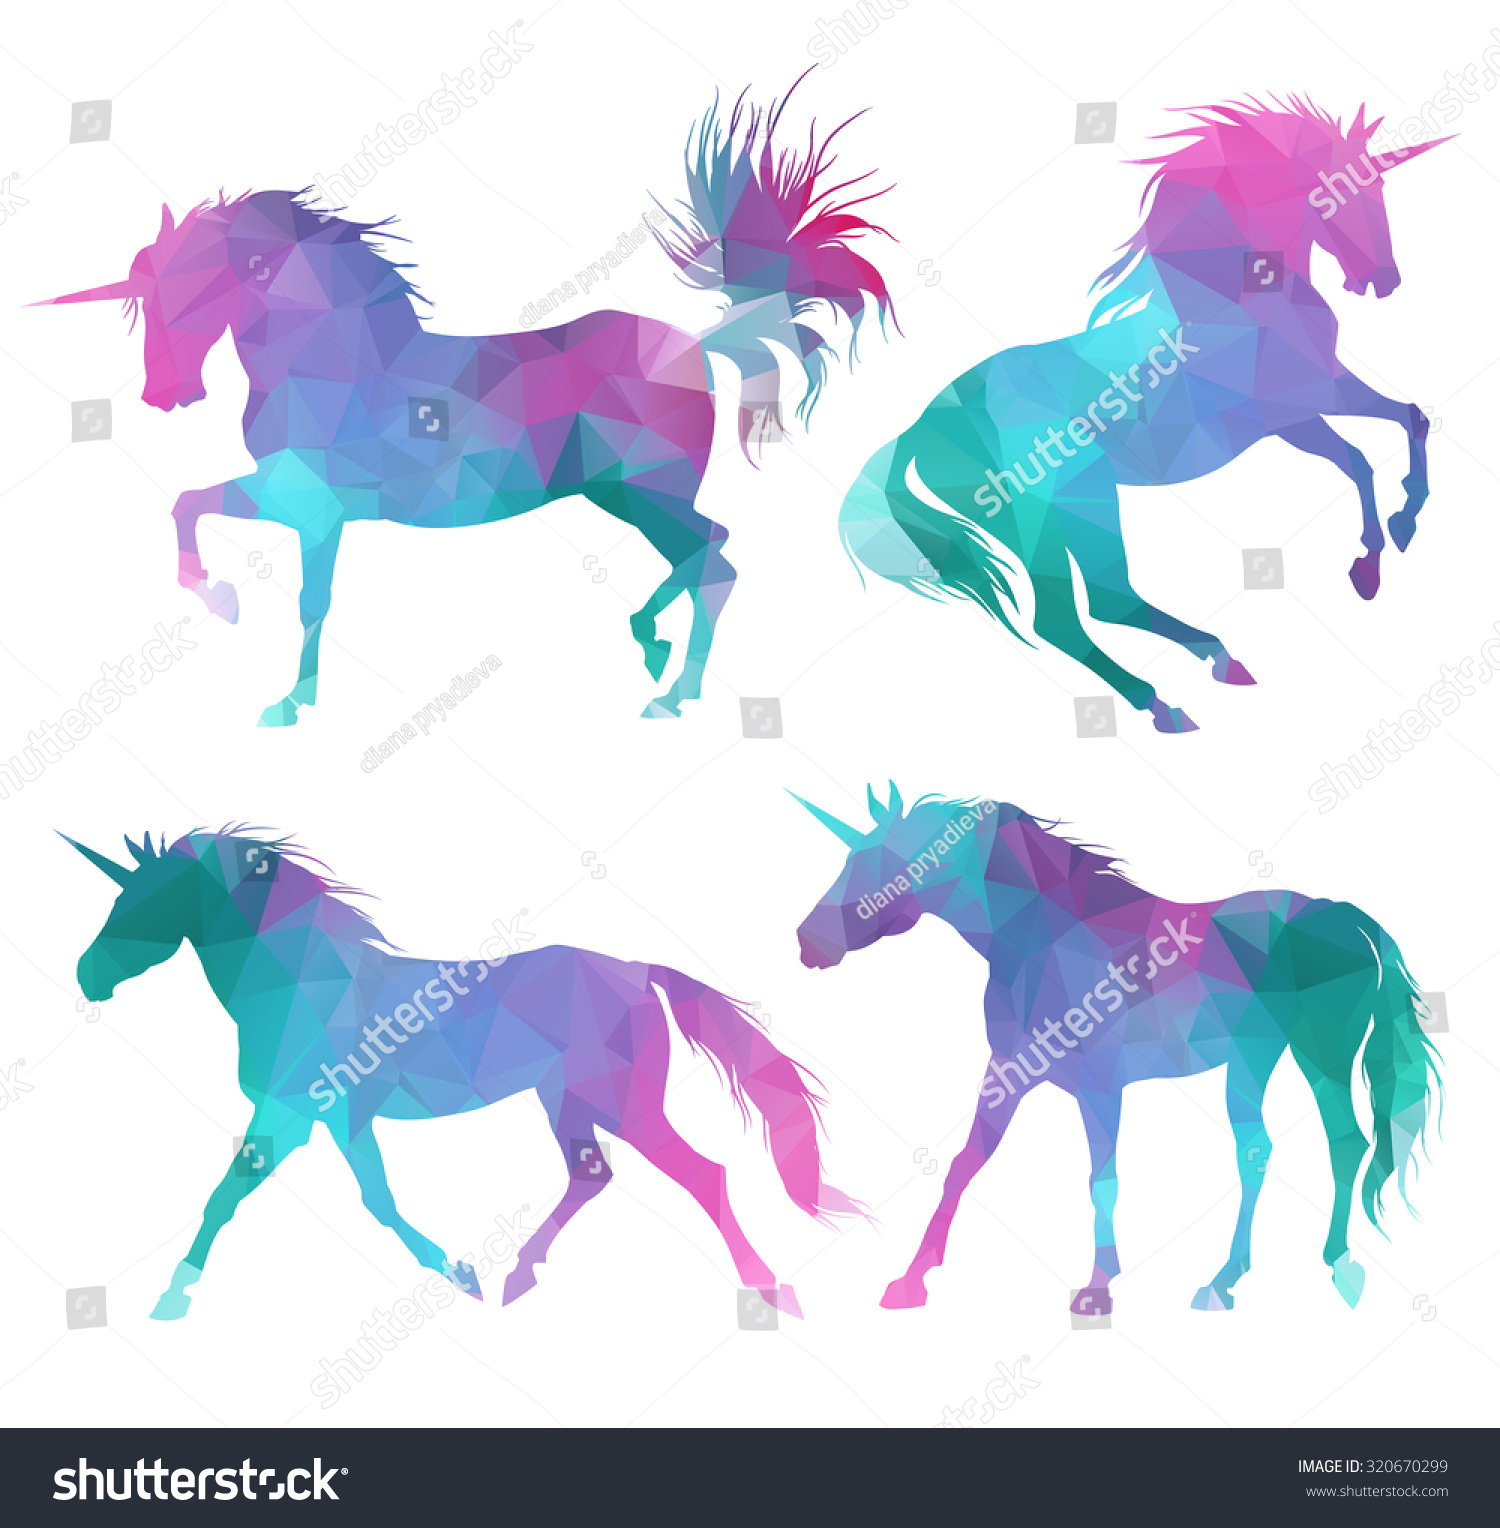 silhouette of unicorns colorful triangular style stock vector